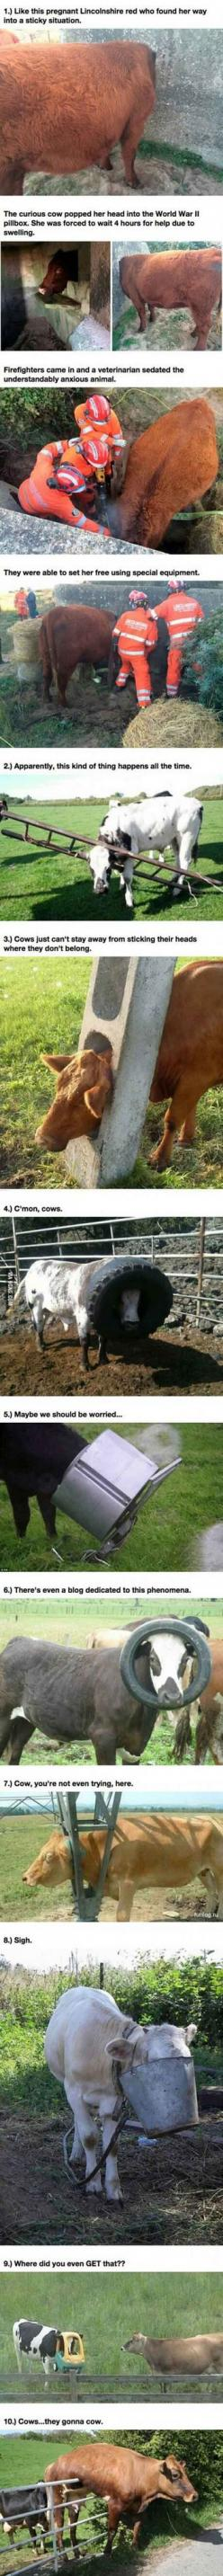 Cows I CANT EVEN: Farm, Funny Animals, Funny Things, Gonna Cow, Cows Gonna, Funny Stuff, Cows They Gonna, Funny Cows